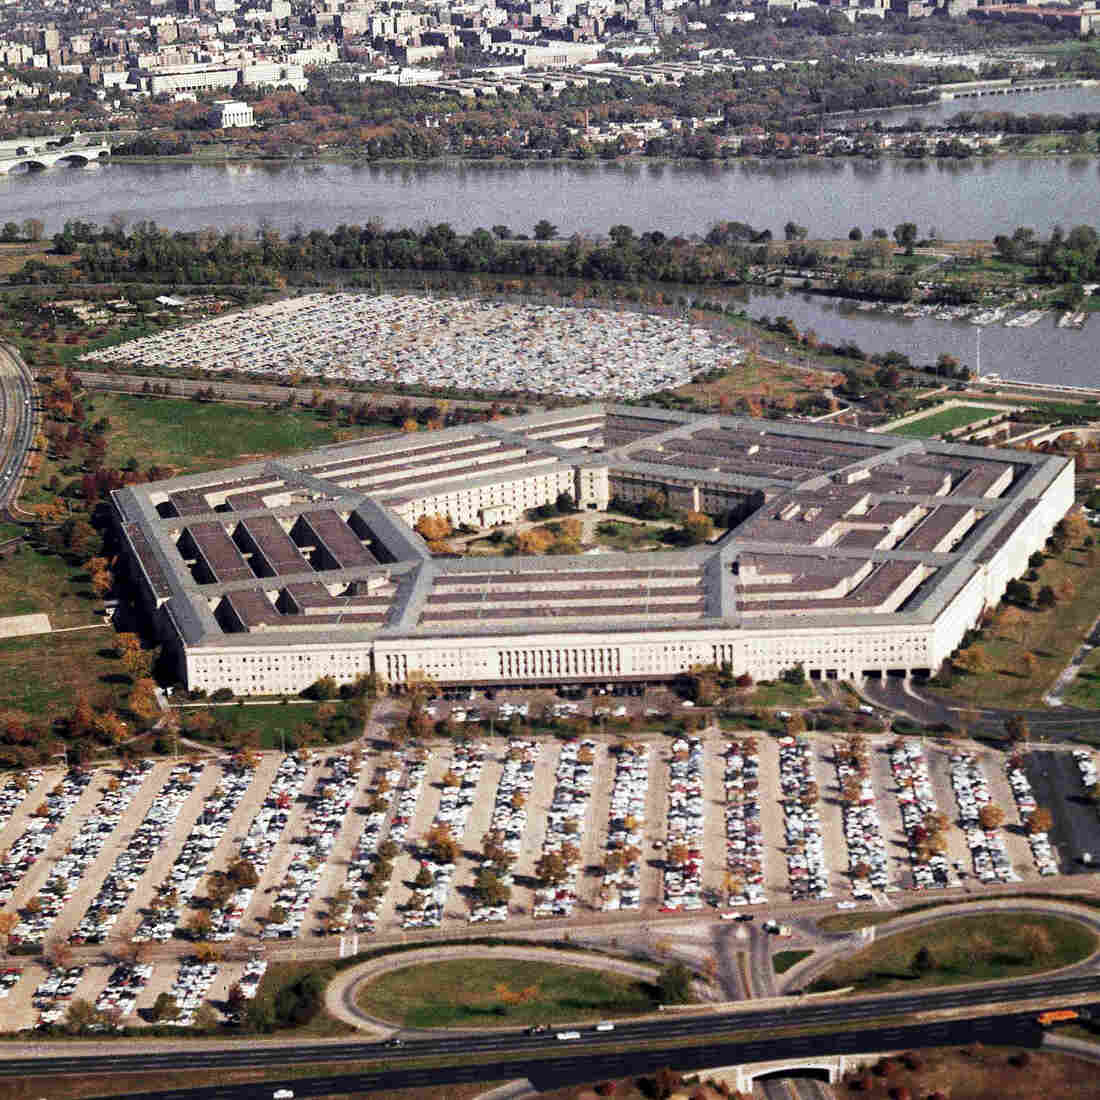 Uncertainty Looms For Pentagon In Obama's Second Term